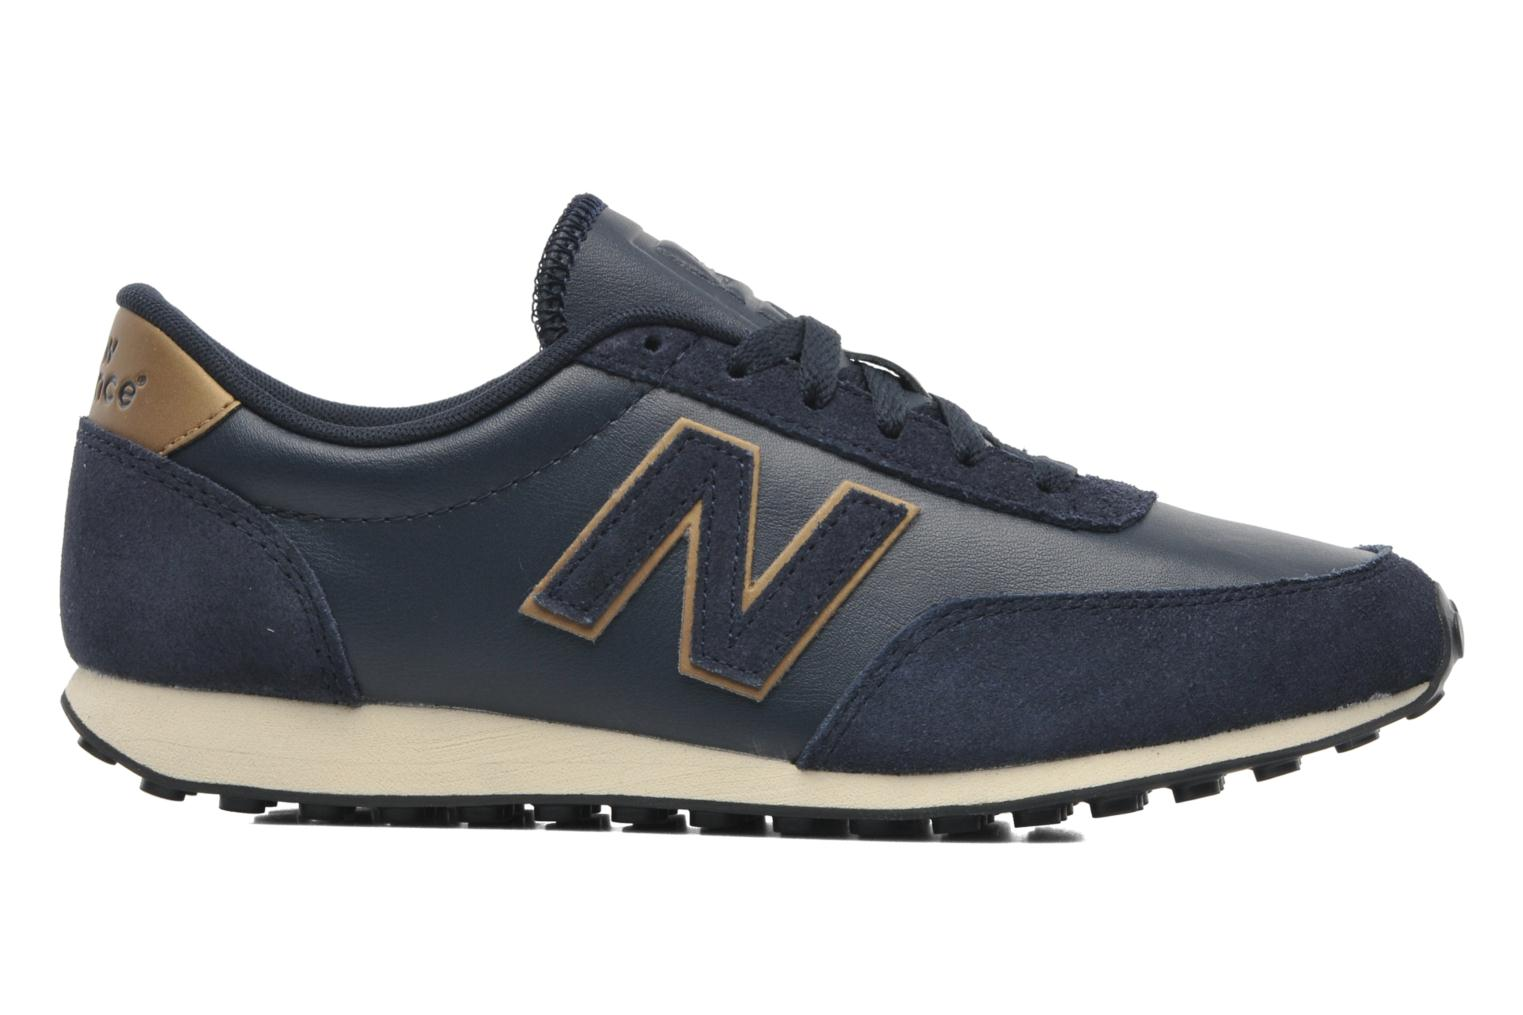 new balance u410 trainers in blue at 201544. Black Bedroom Furniture Sets. Home Design Ideas